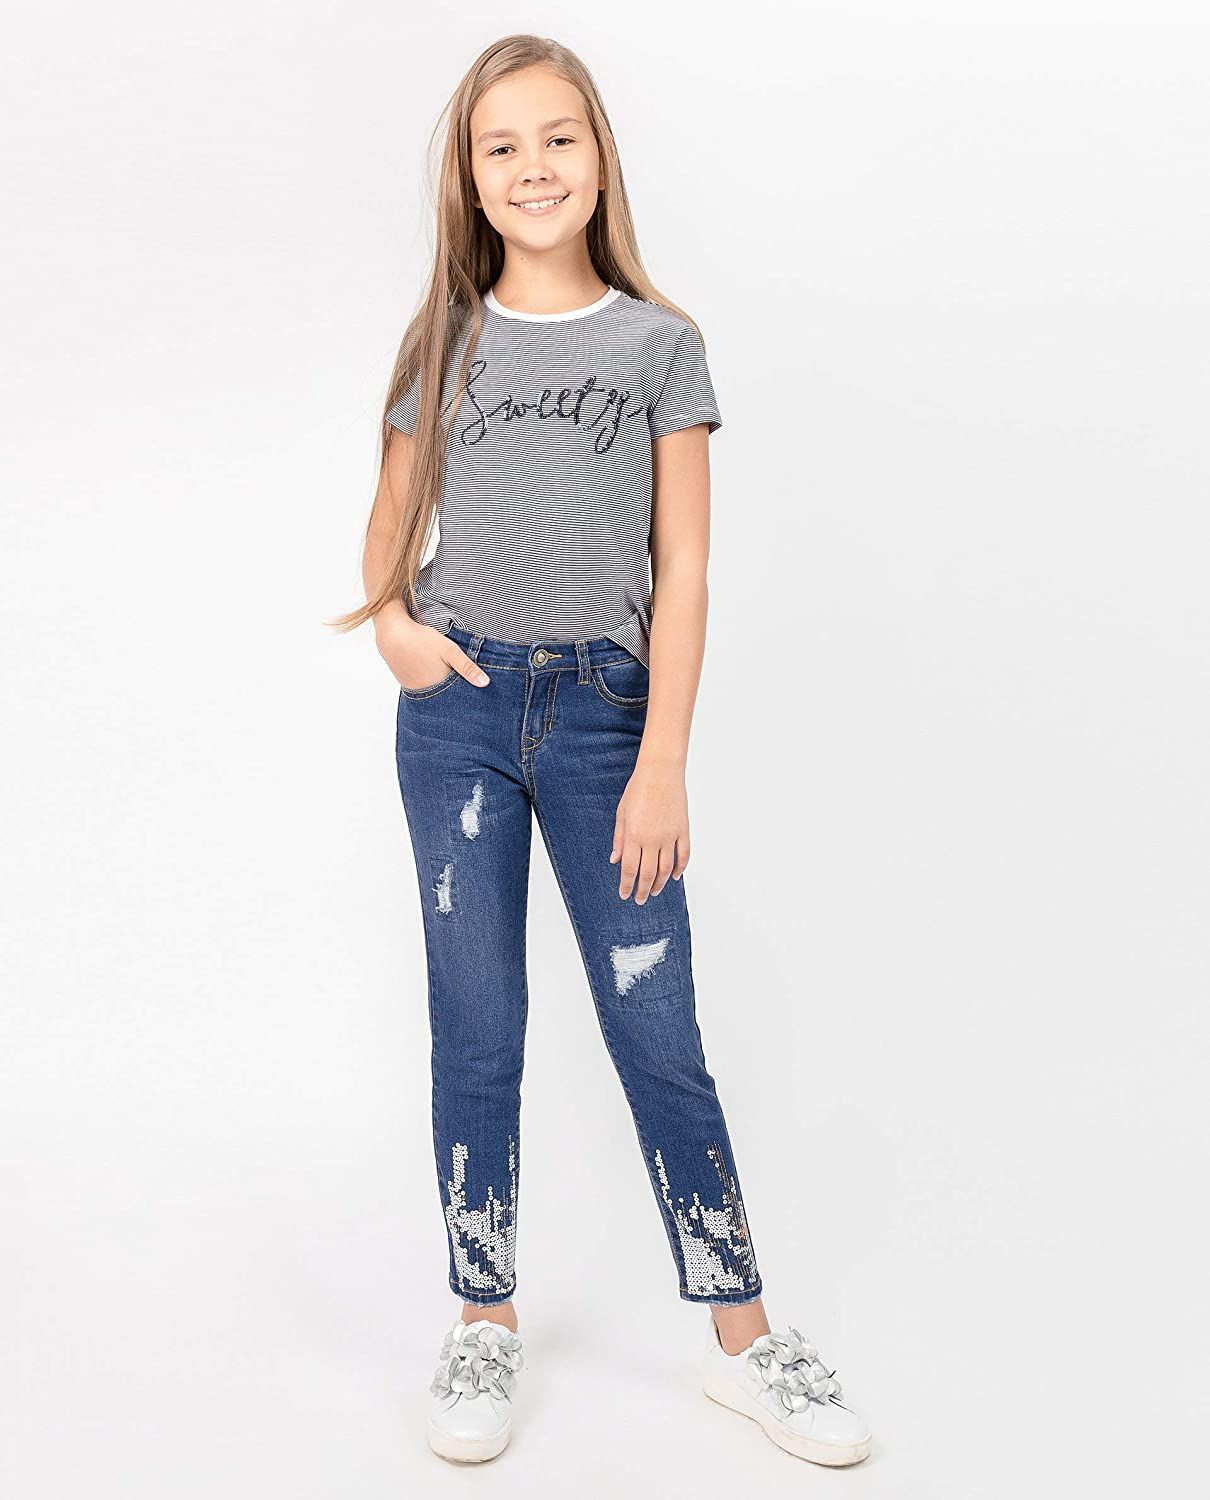 Casual Sequins Slim Fit GULLIVER Teen Girl Denim Jeans Colour Blue Stone Wash Distressed Ripped Denim Zip Button Pockets for 8-13 Years Cotton